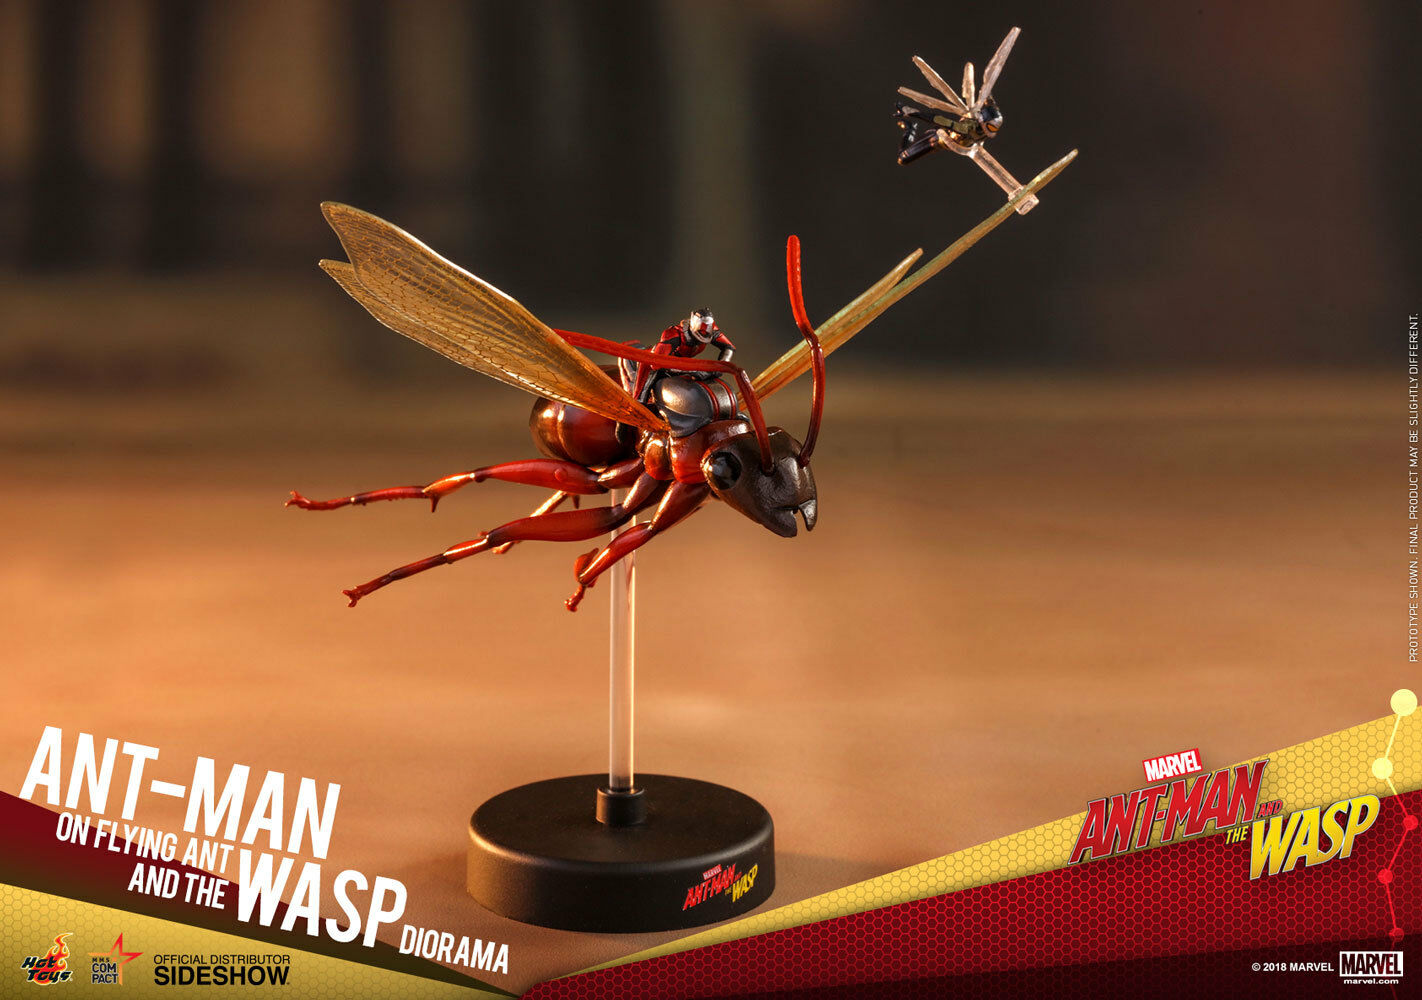 HOT TOYS Marvel  Ant-Man on Flying Ant and The Wasp Diorama